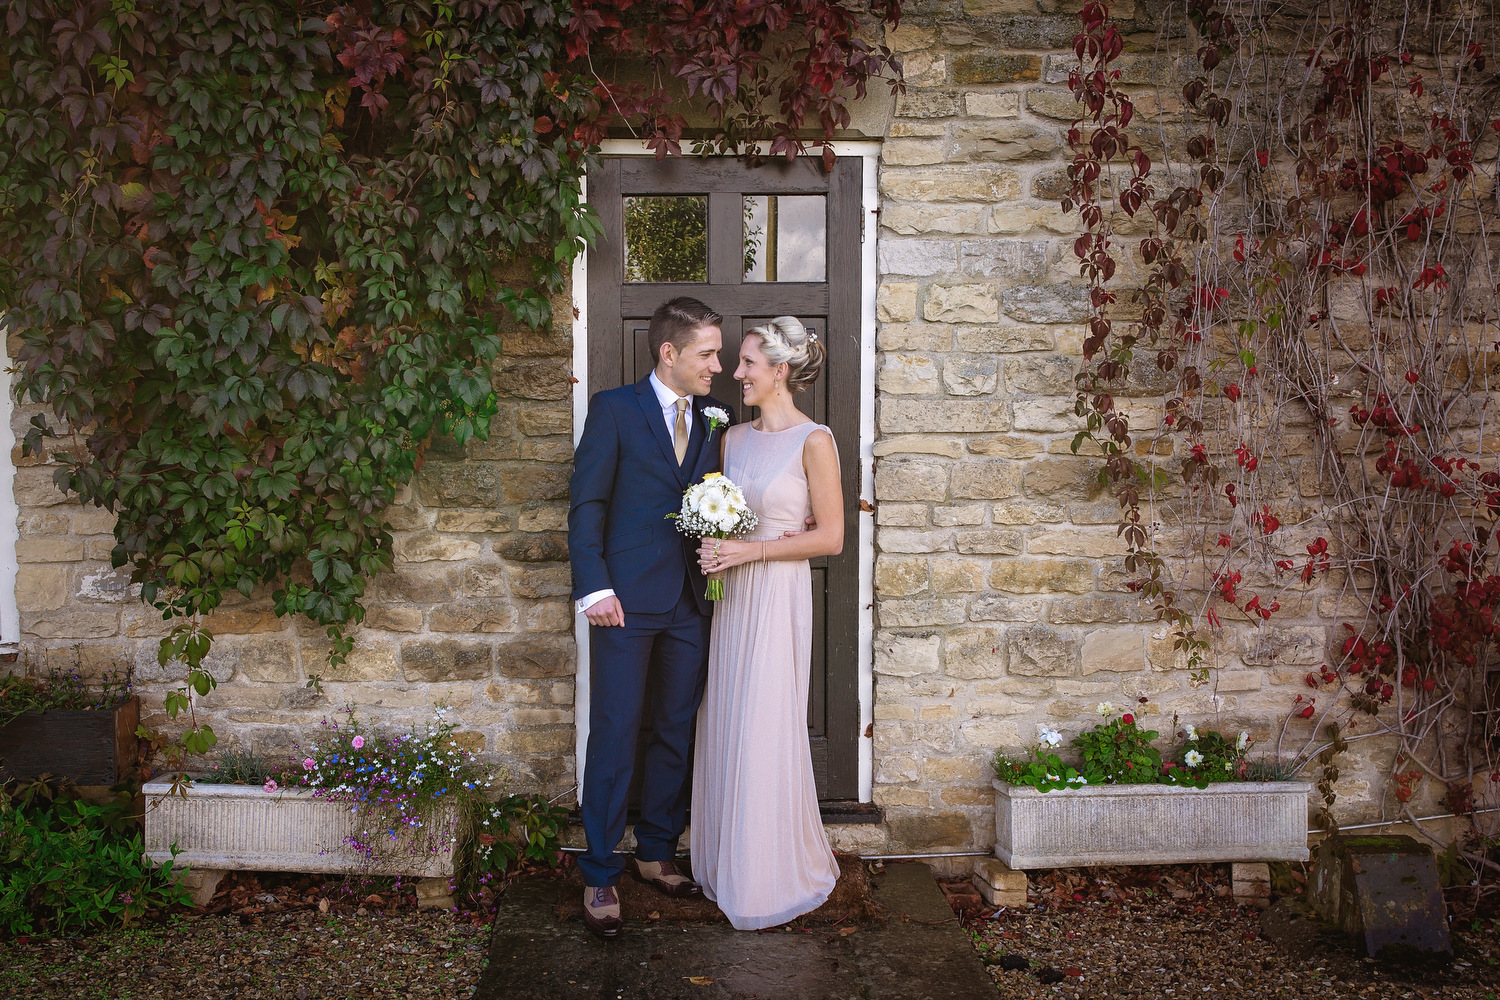 charnwood_weddings_barnsdale_lodge_rutland_dave_j80ane.JPG